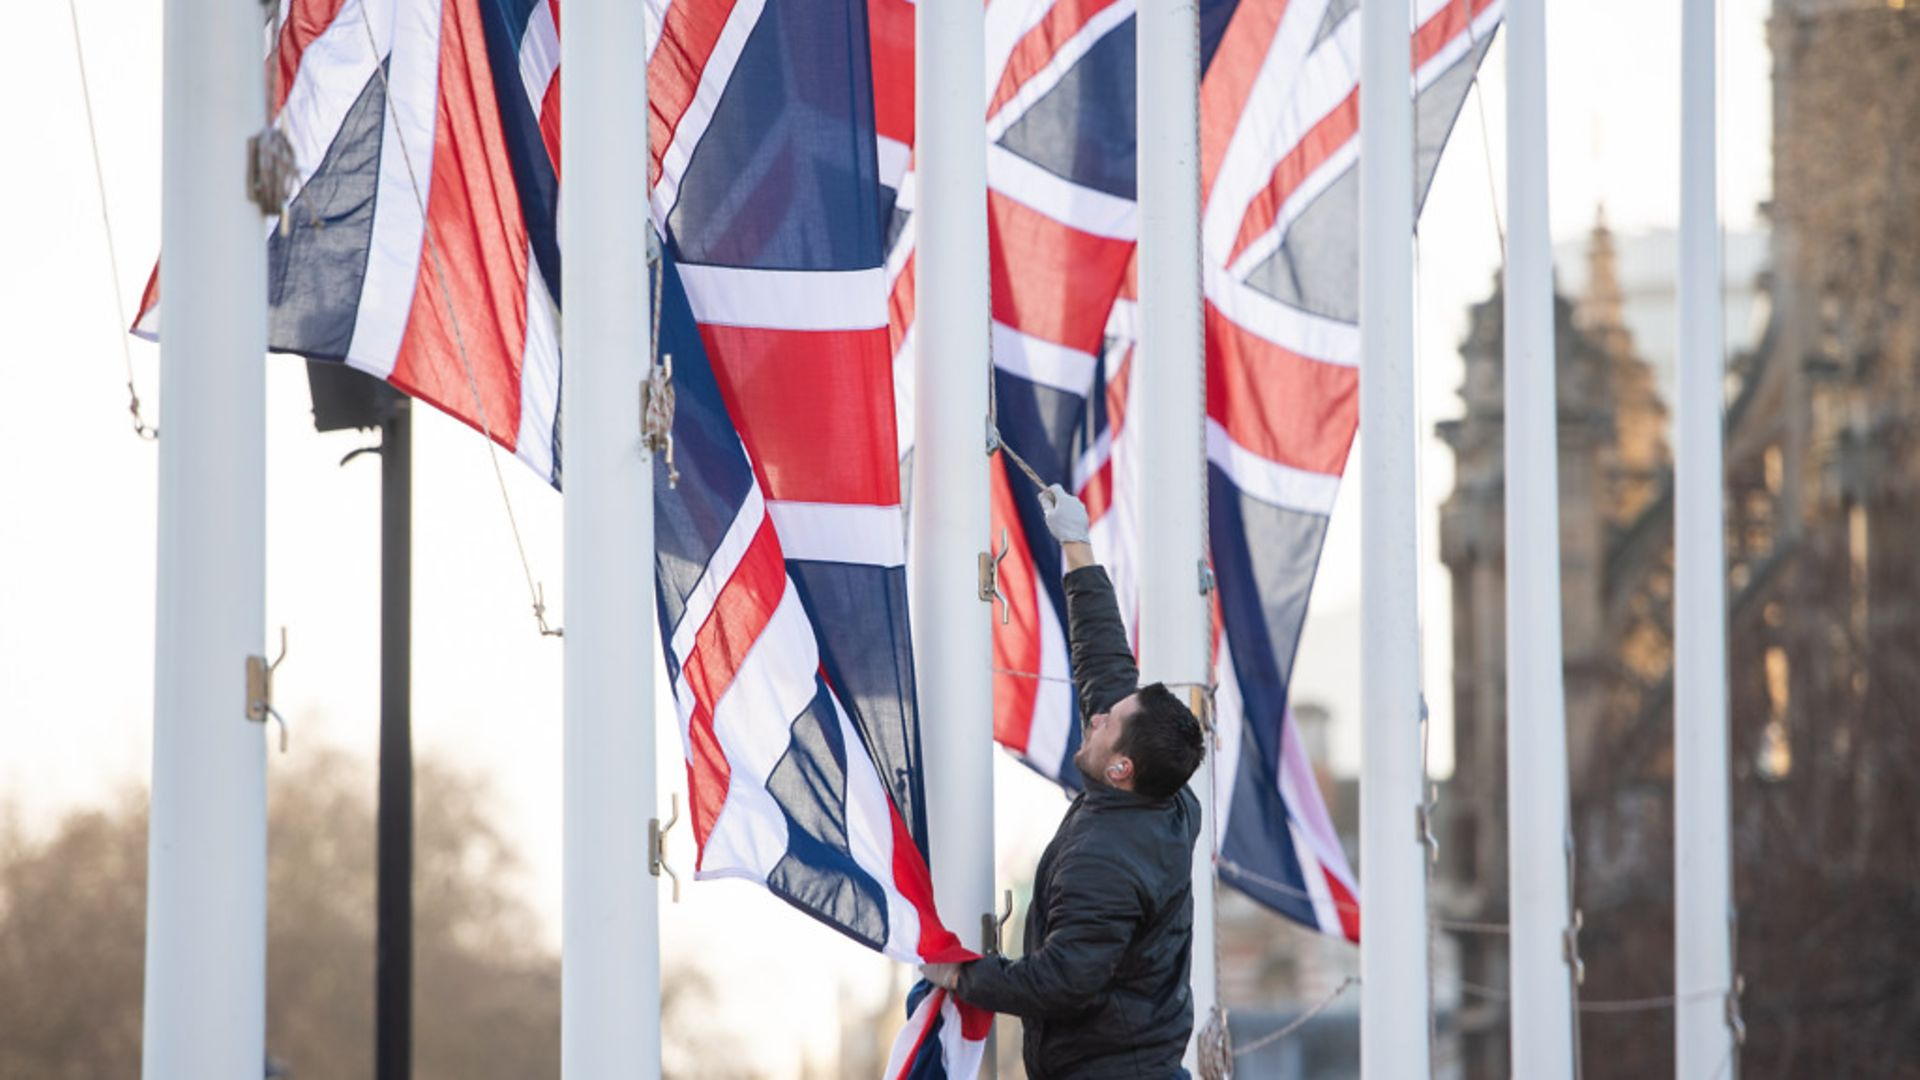 A worker removes Union flags from flagpoles in Parliament Square, London - Credit: PA